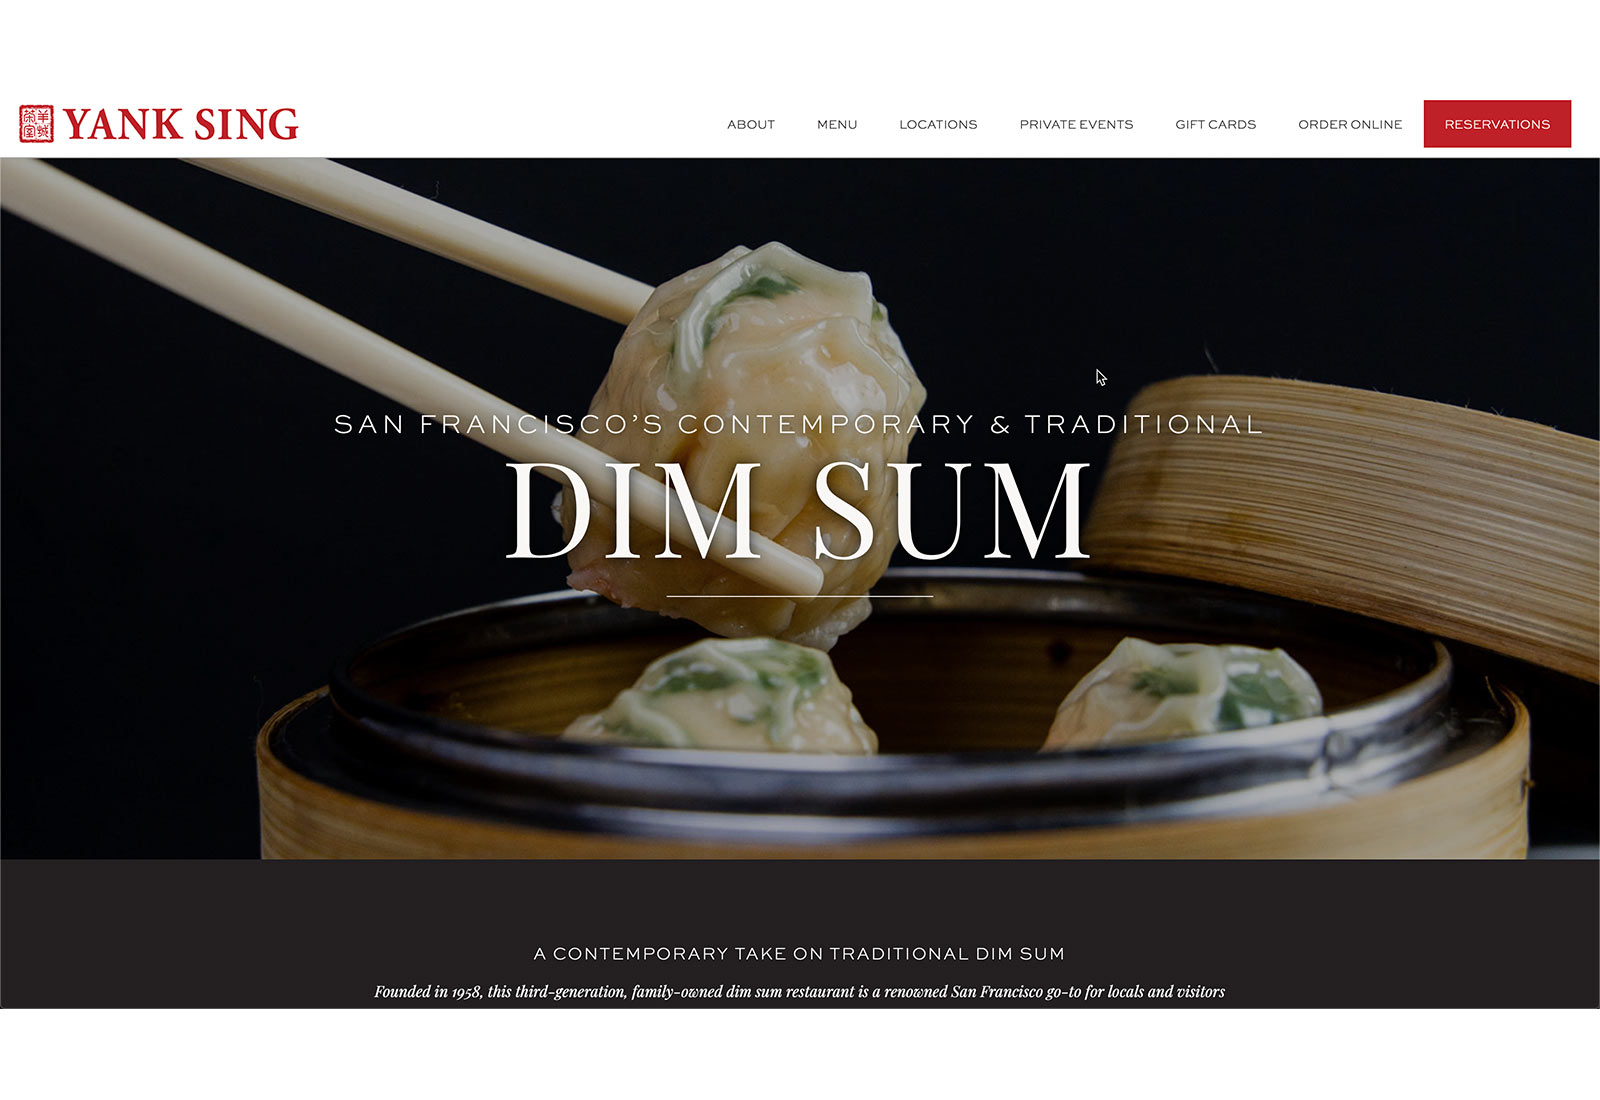 Screenshot of home page for Yank Sing restaurant in San Francisco featuring chopsticks lifting steamed dumpling.